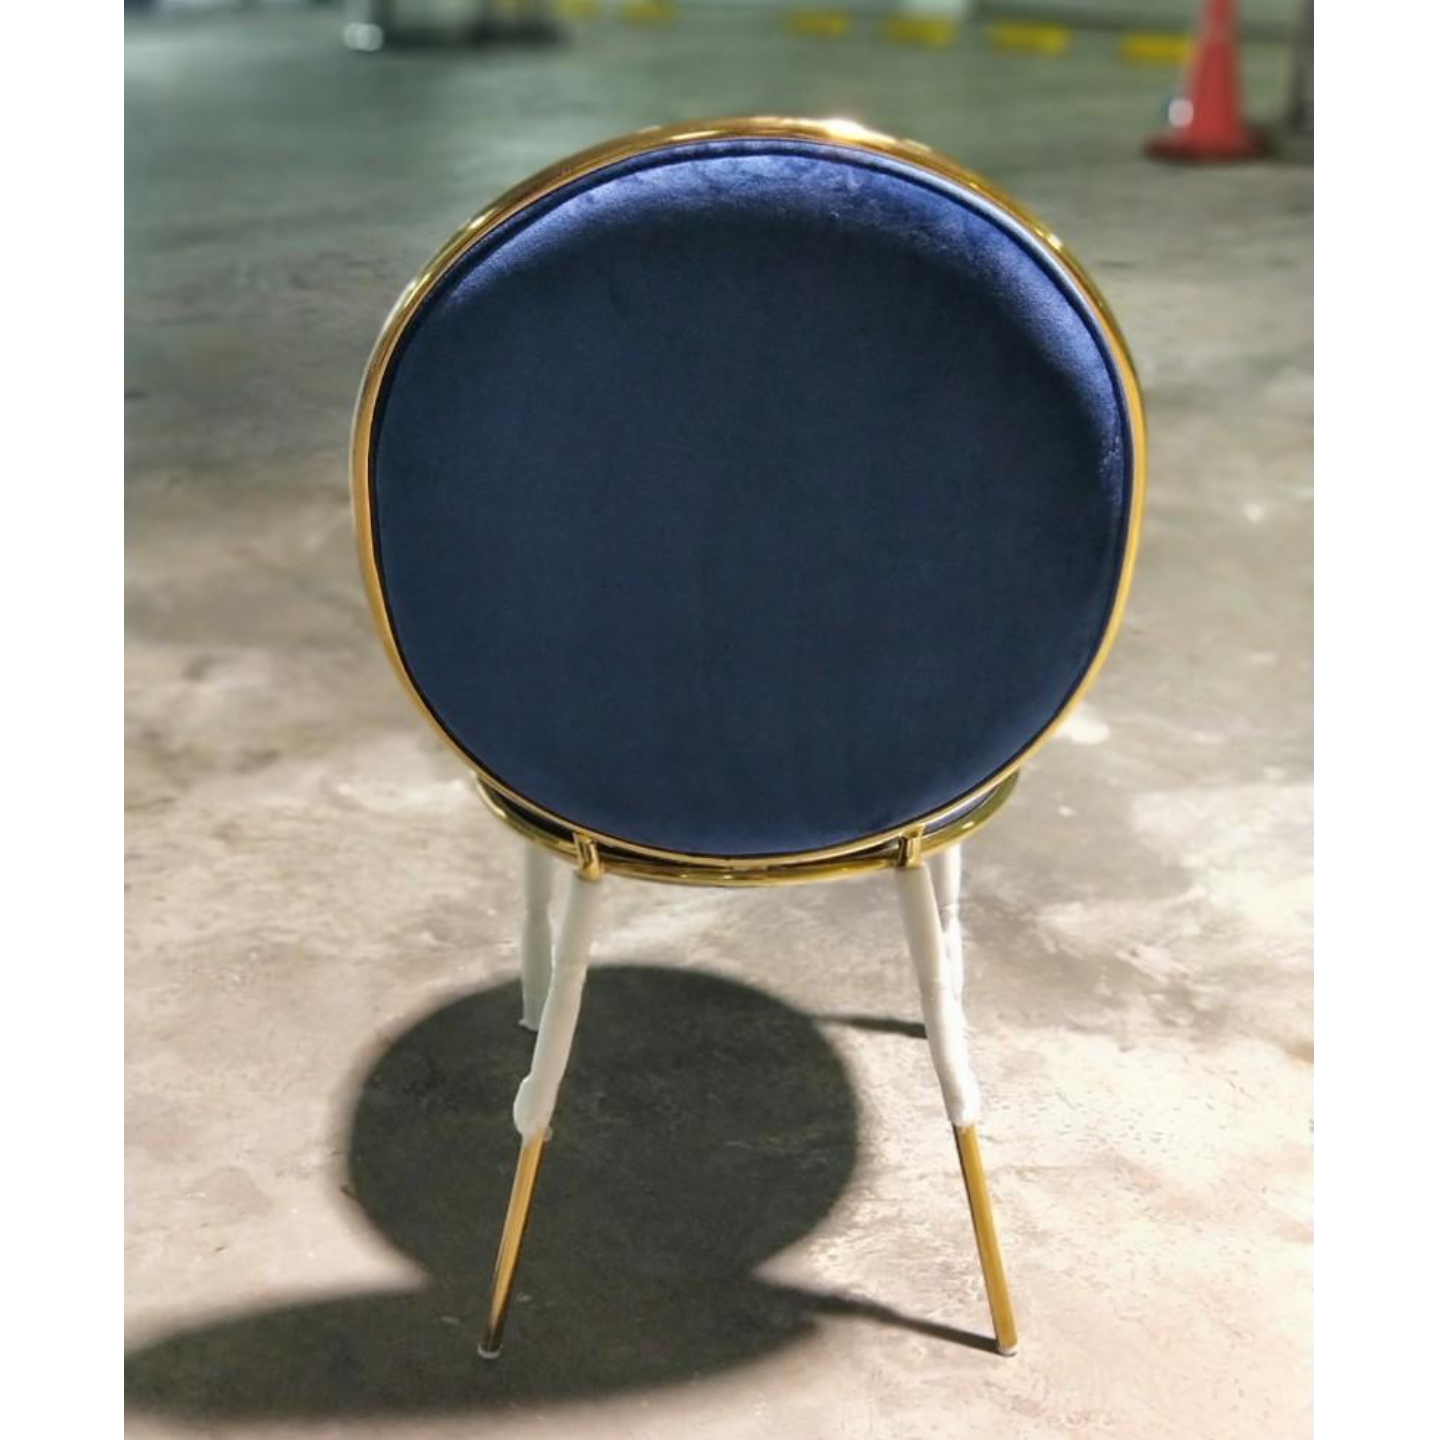 LAONA Chair in Blue and Gold Frame